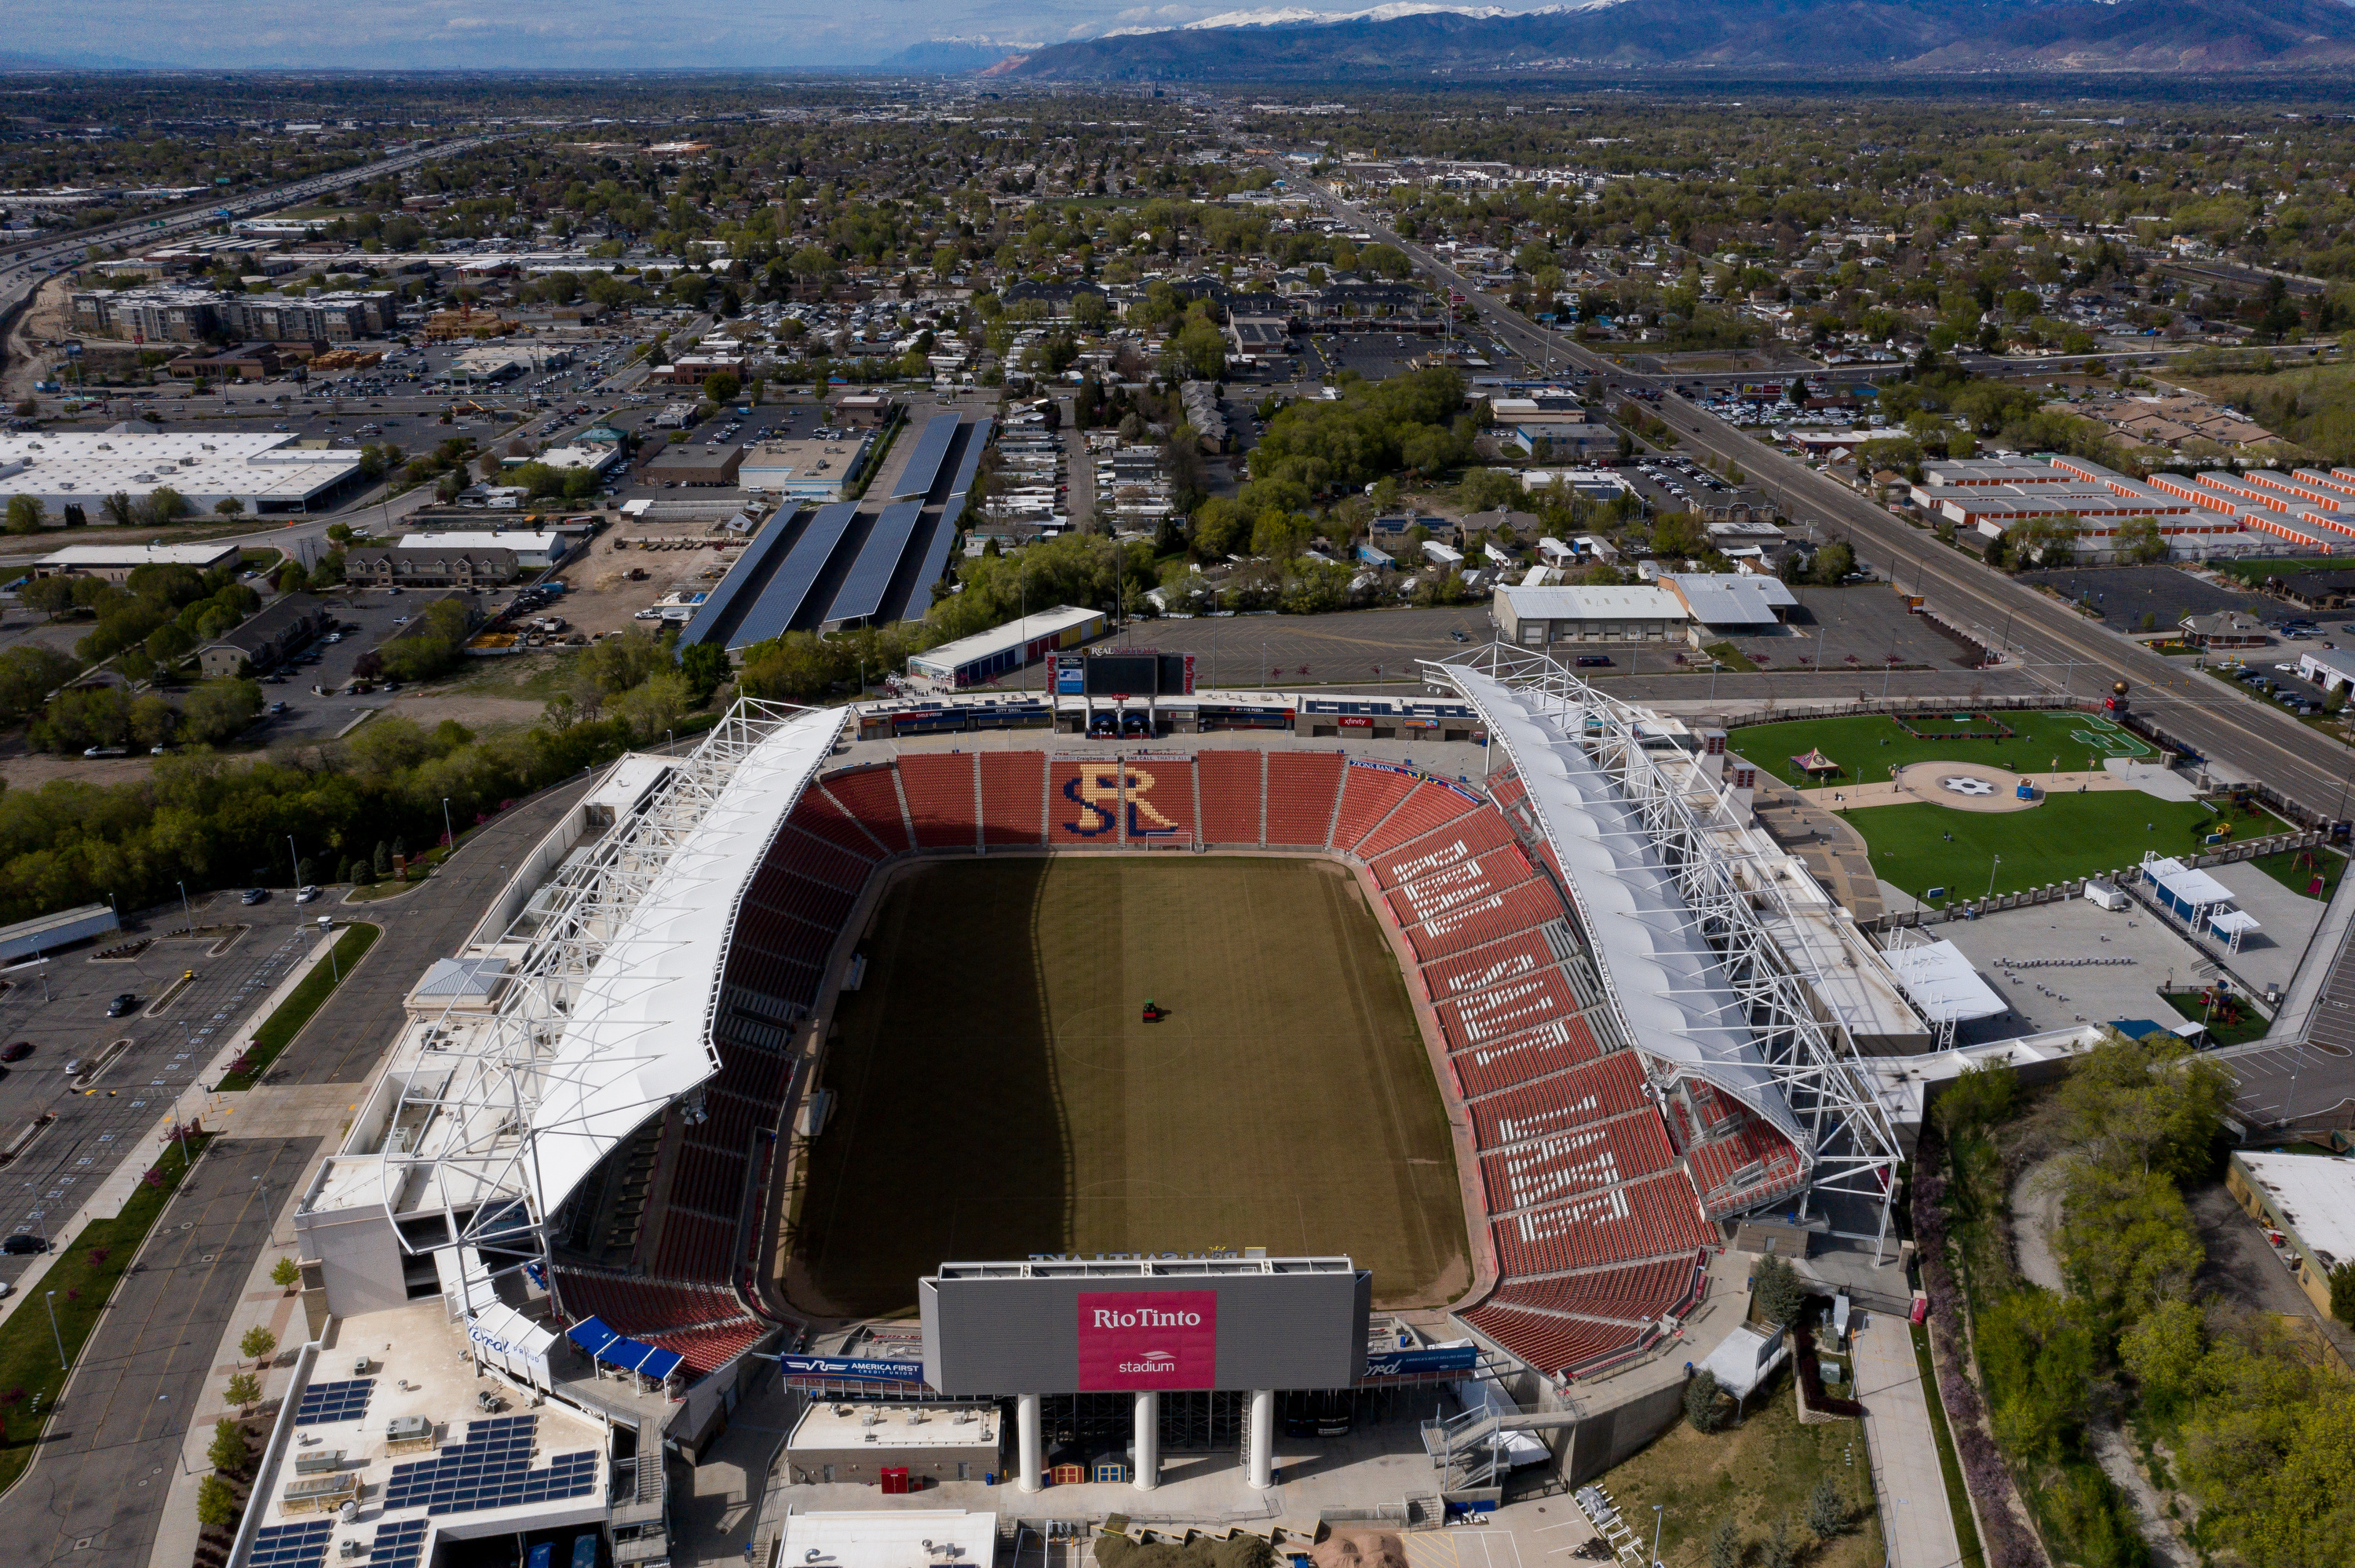 Rio Tinto Stadium in Sandy is pictured on Friday, April 24, 2020.